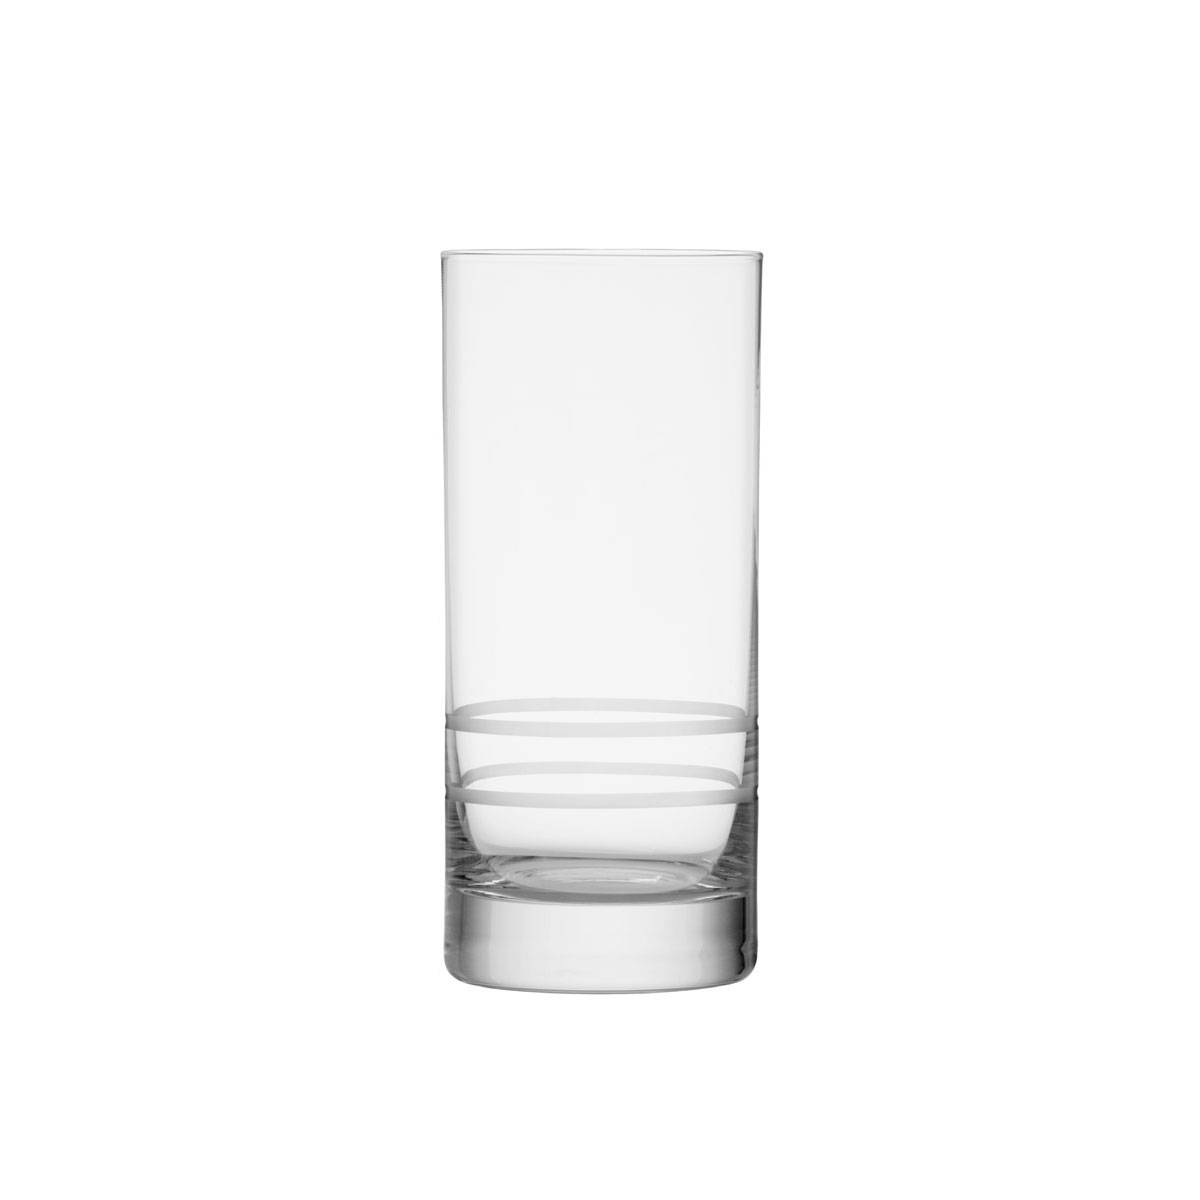 Schott Zwiesel Tritan Crystal, Crafthouse Iceberg Collins Glass, Single